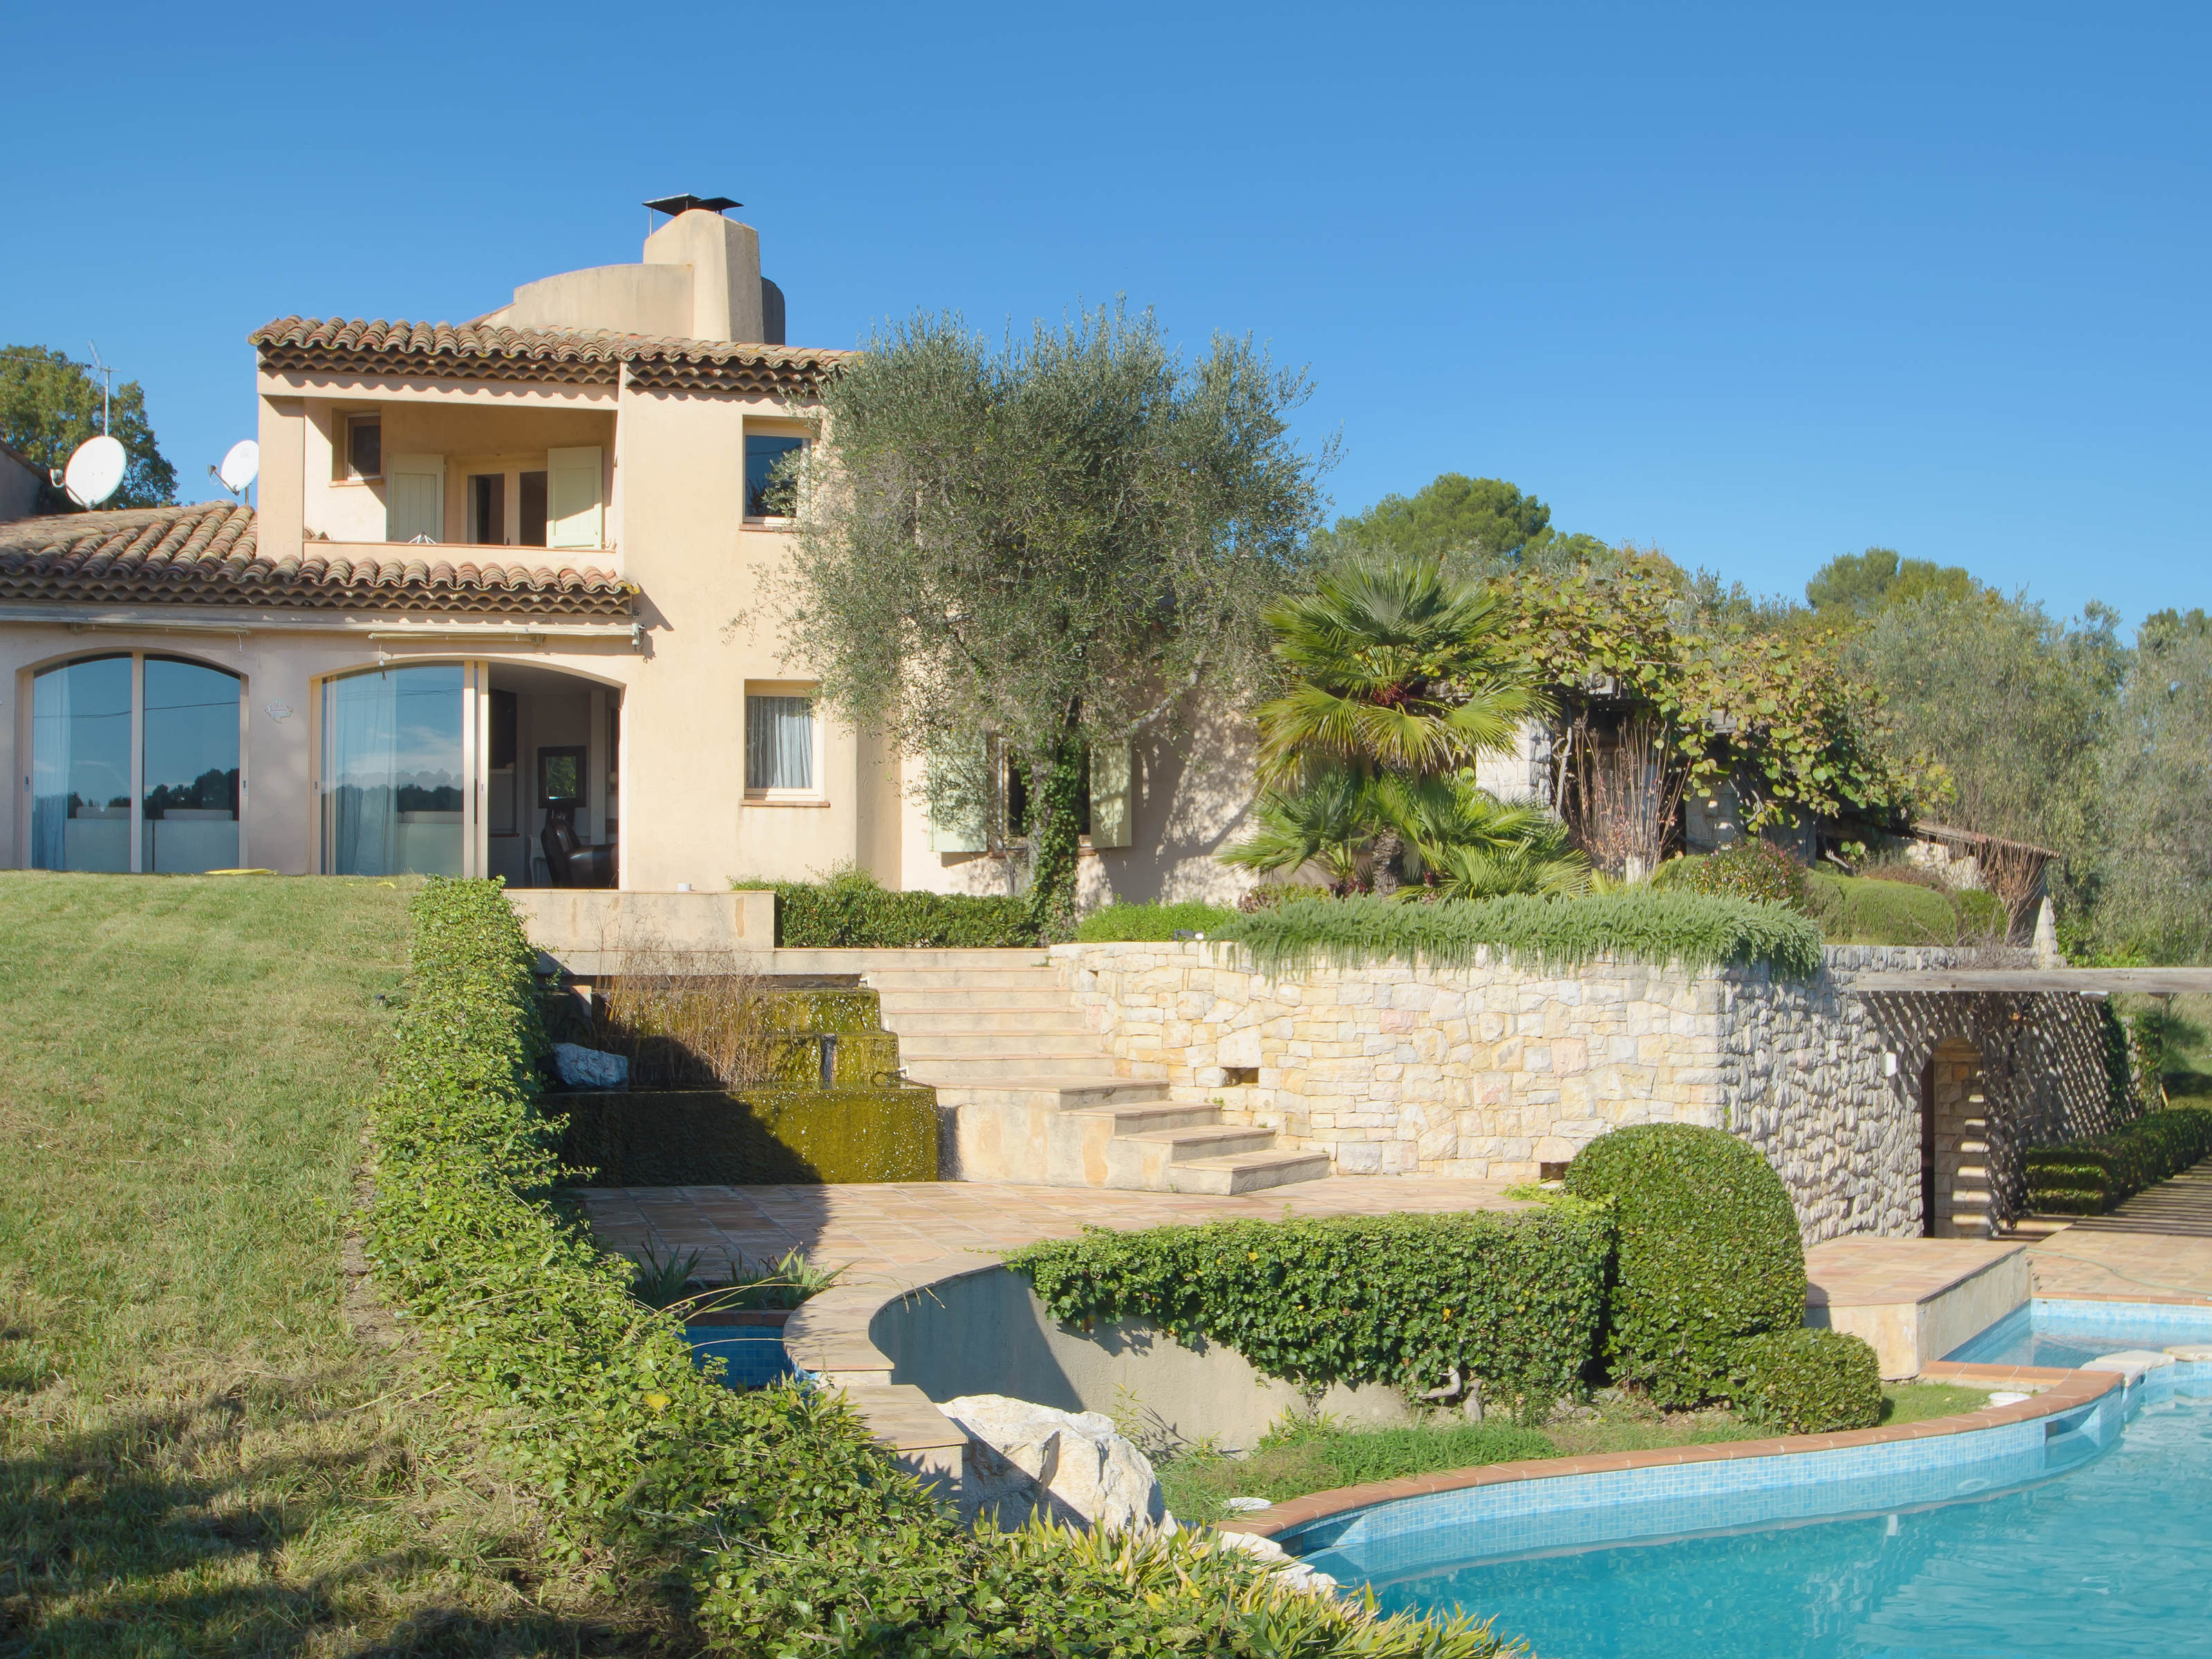 Single Family Home for Sale at Lovely Provencal villa for sale in a secured domain of Mougins Mougins, Provence-Alpes-Cote D'Azur 06250 France